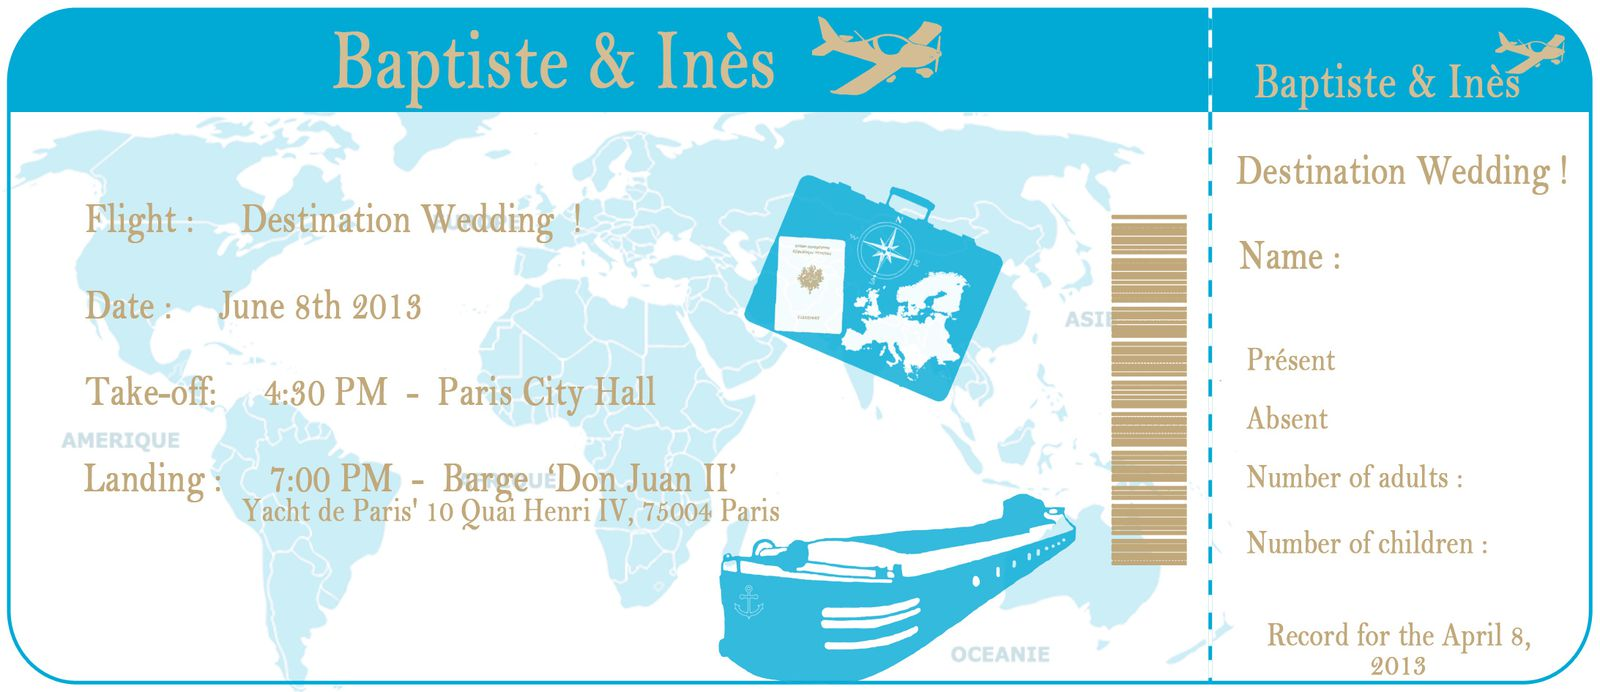 Oui-dding planners